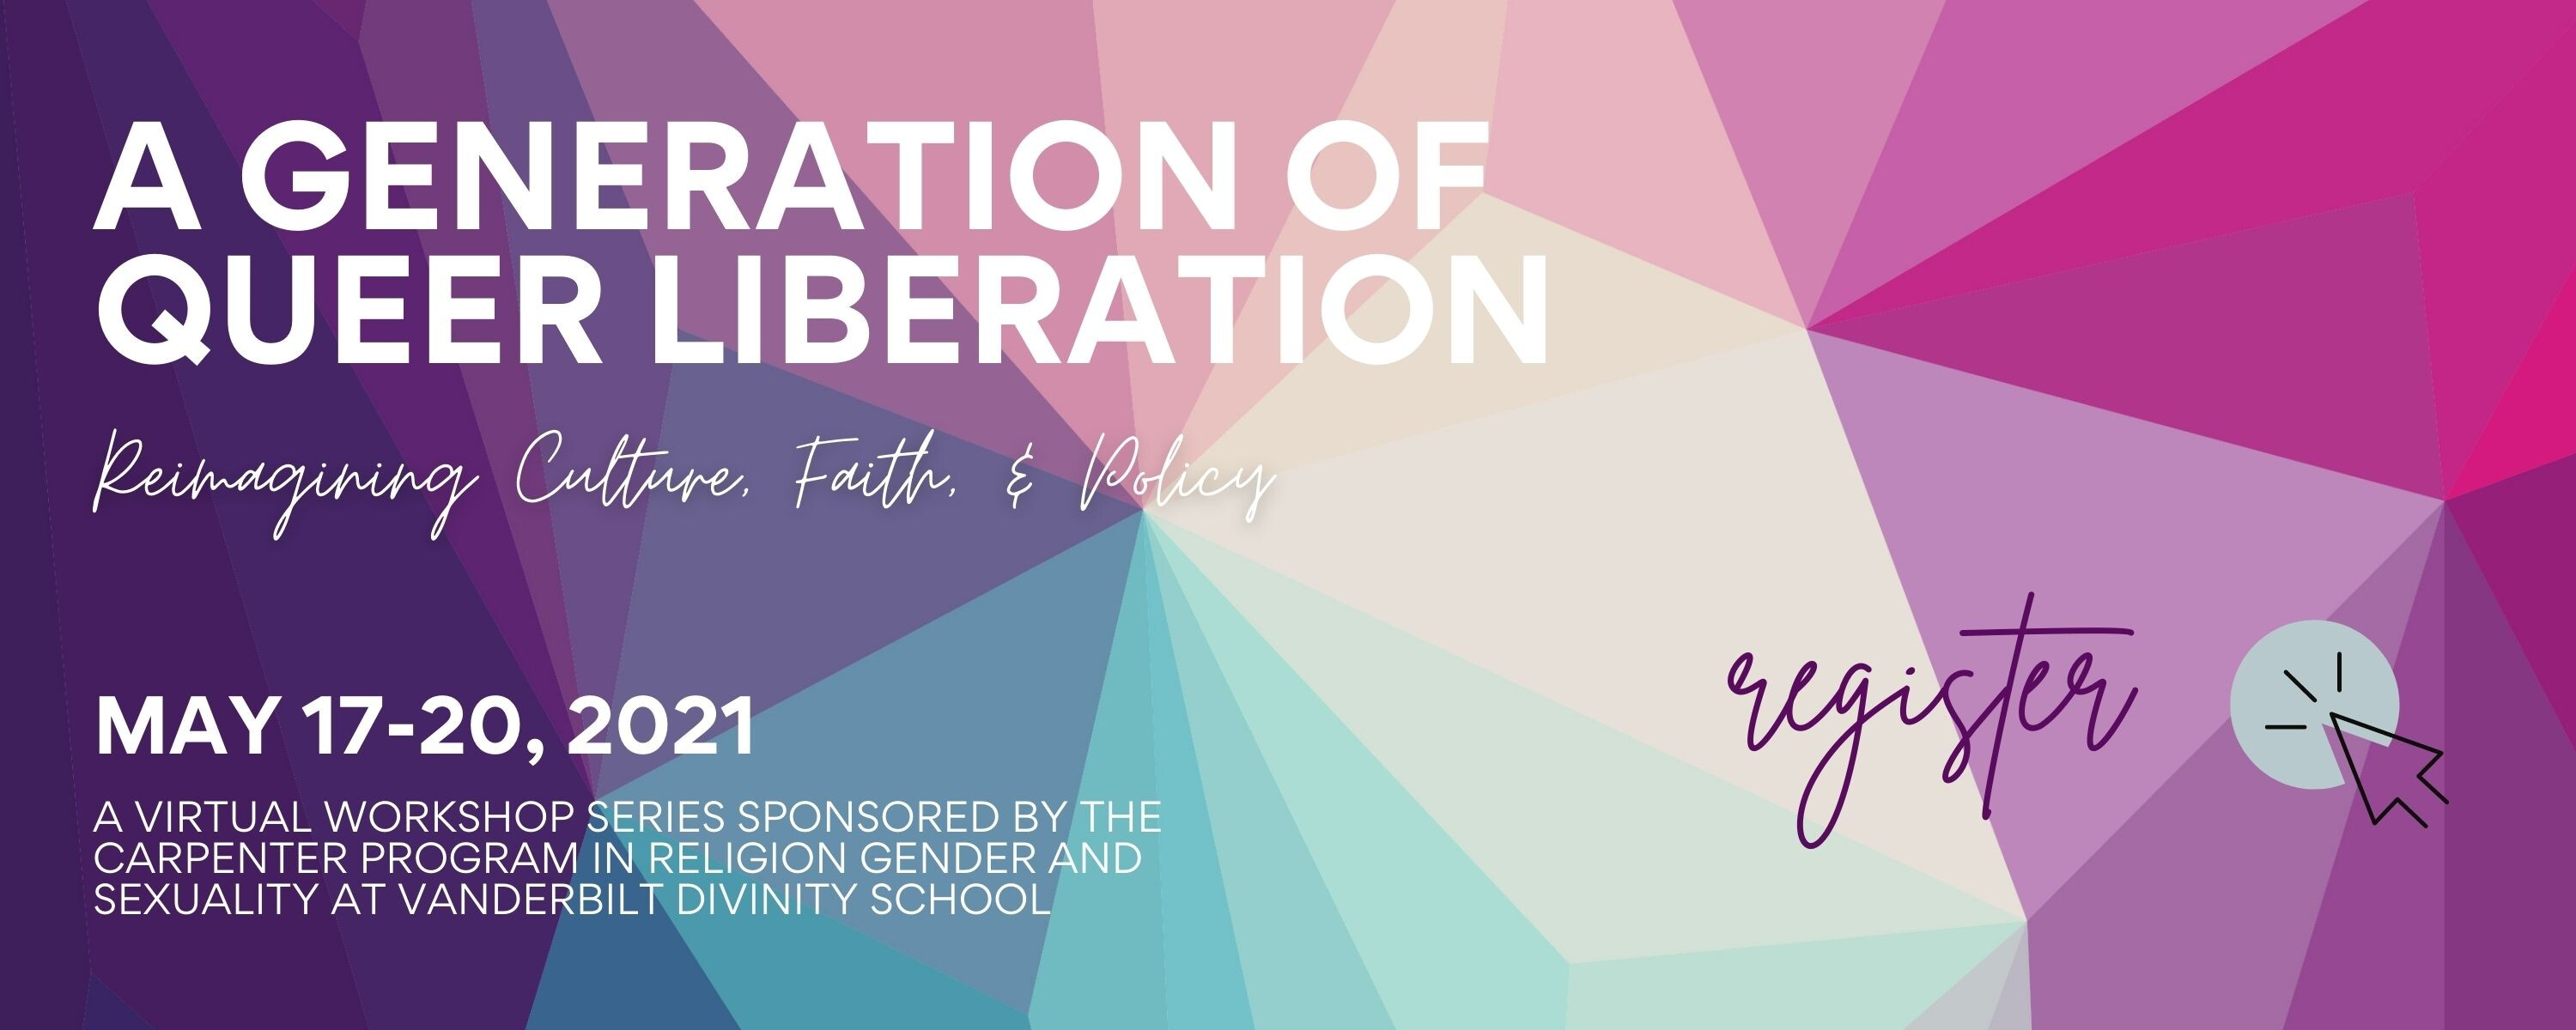 A Generation of Queer Liberation: Reimagining Culture, Faith, & Policy